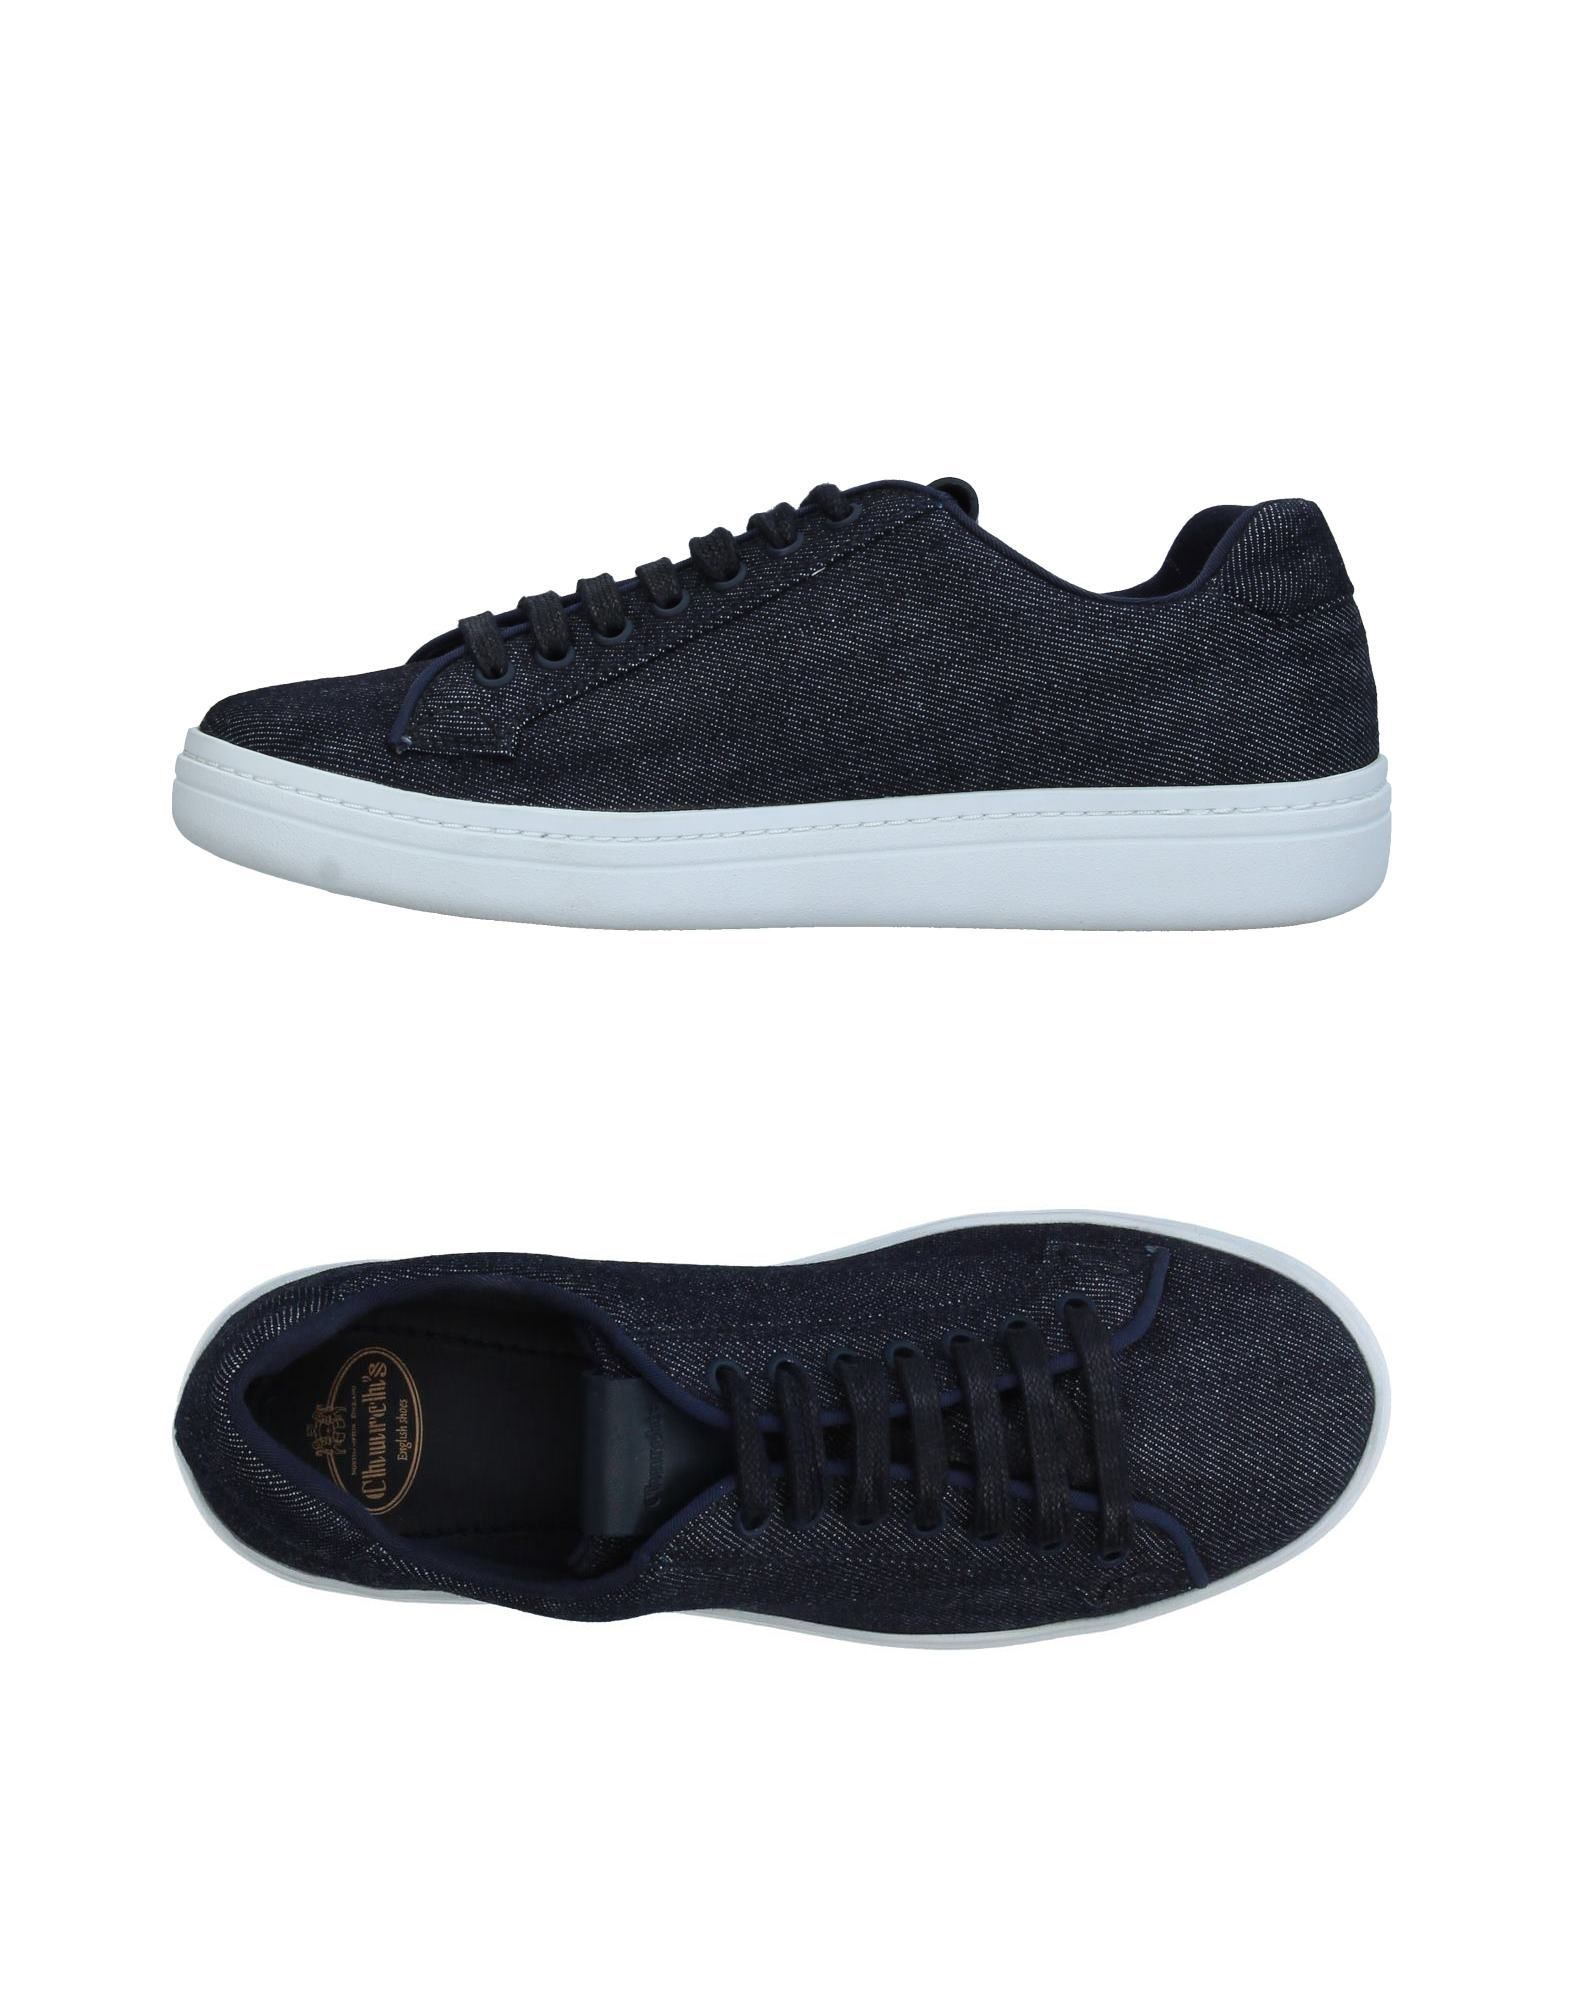 Sneakers Churchs Donna - Acquista online su